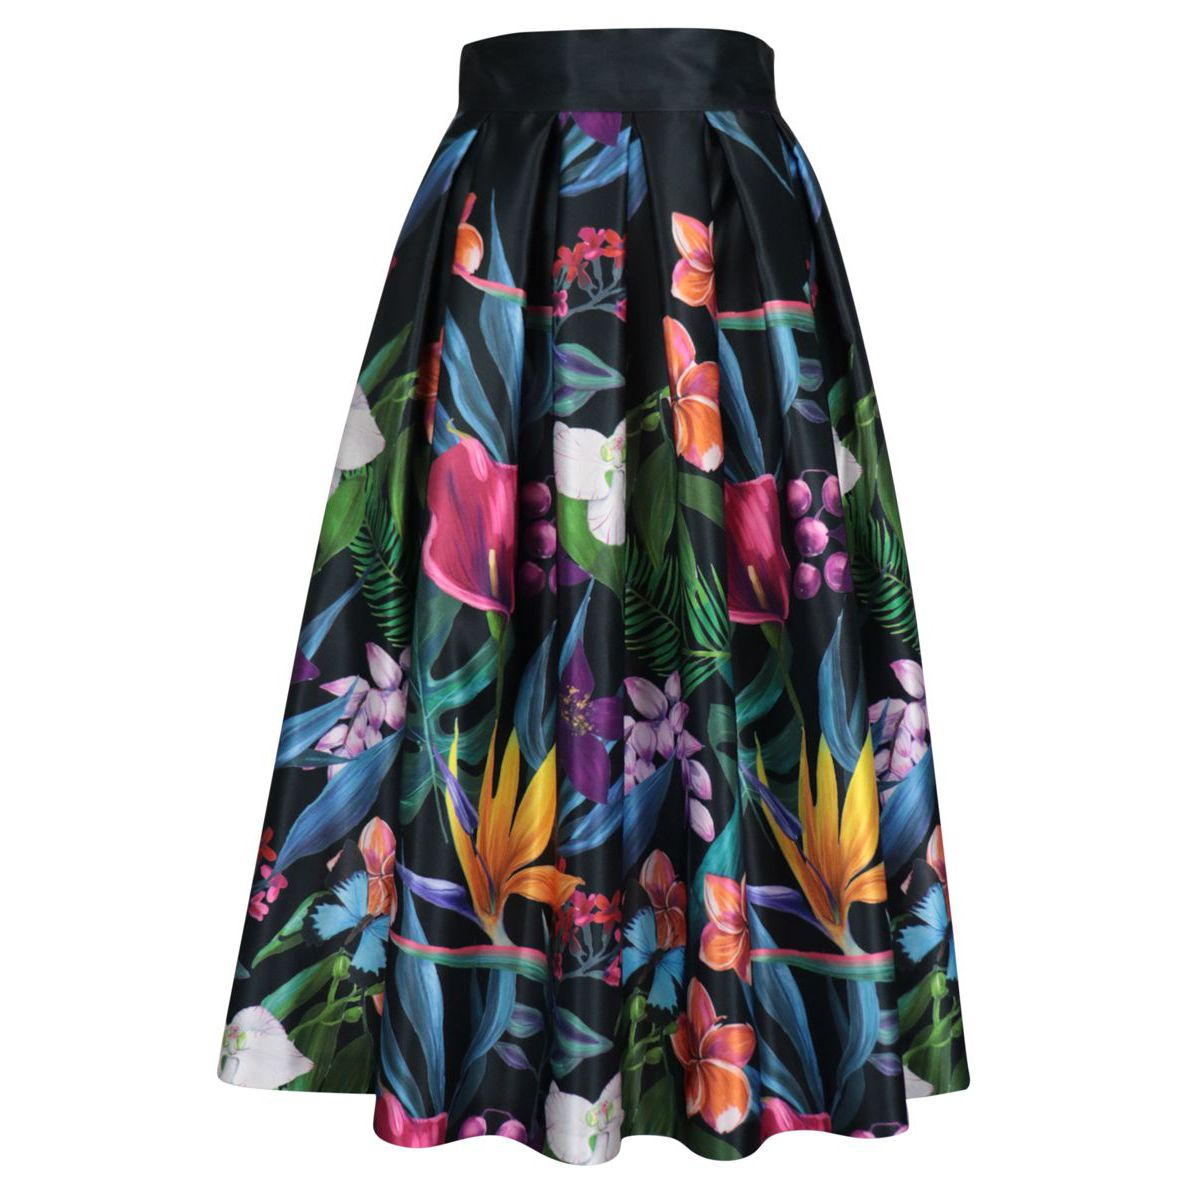 Wide viscose skirt with floral pattern Black / fant.fiori GIADA CURTI